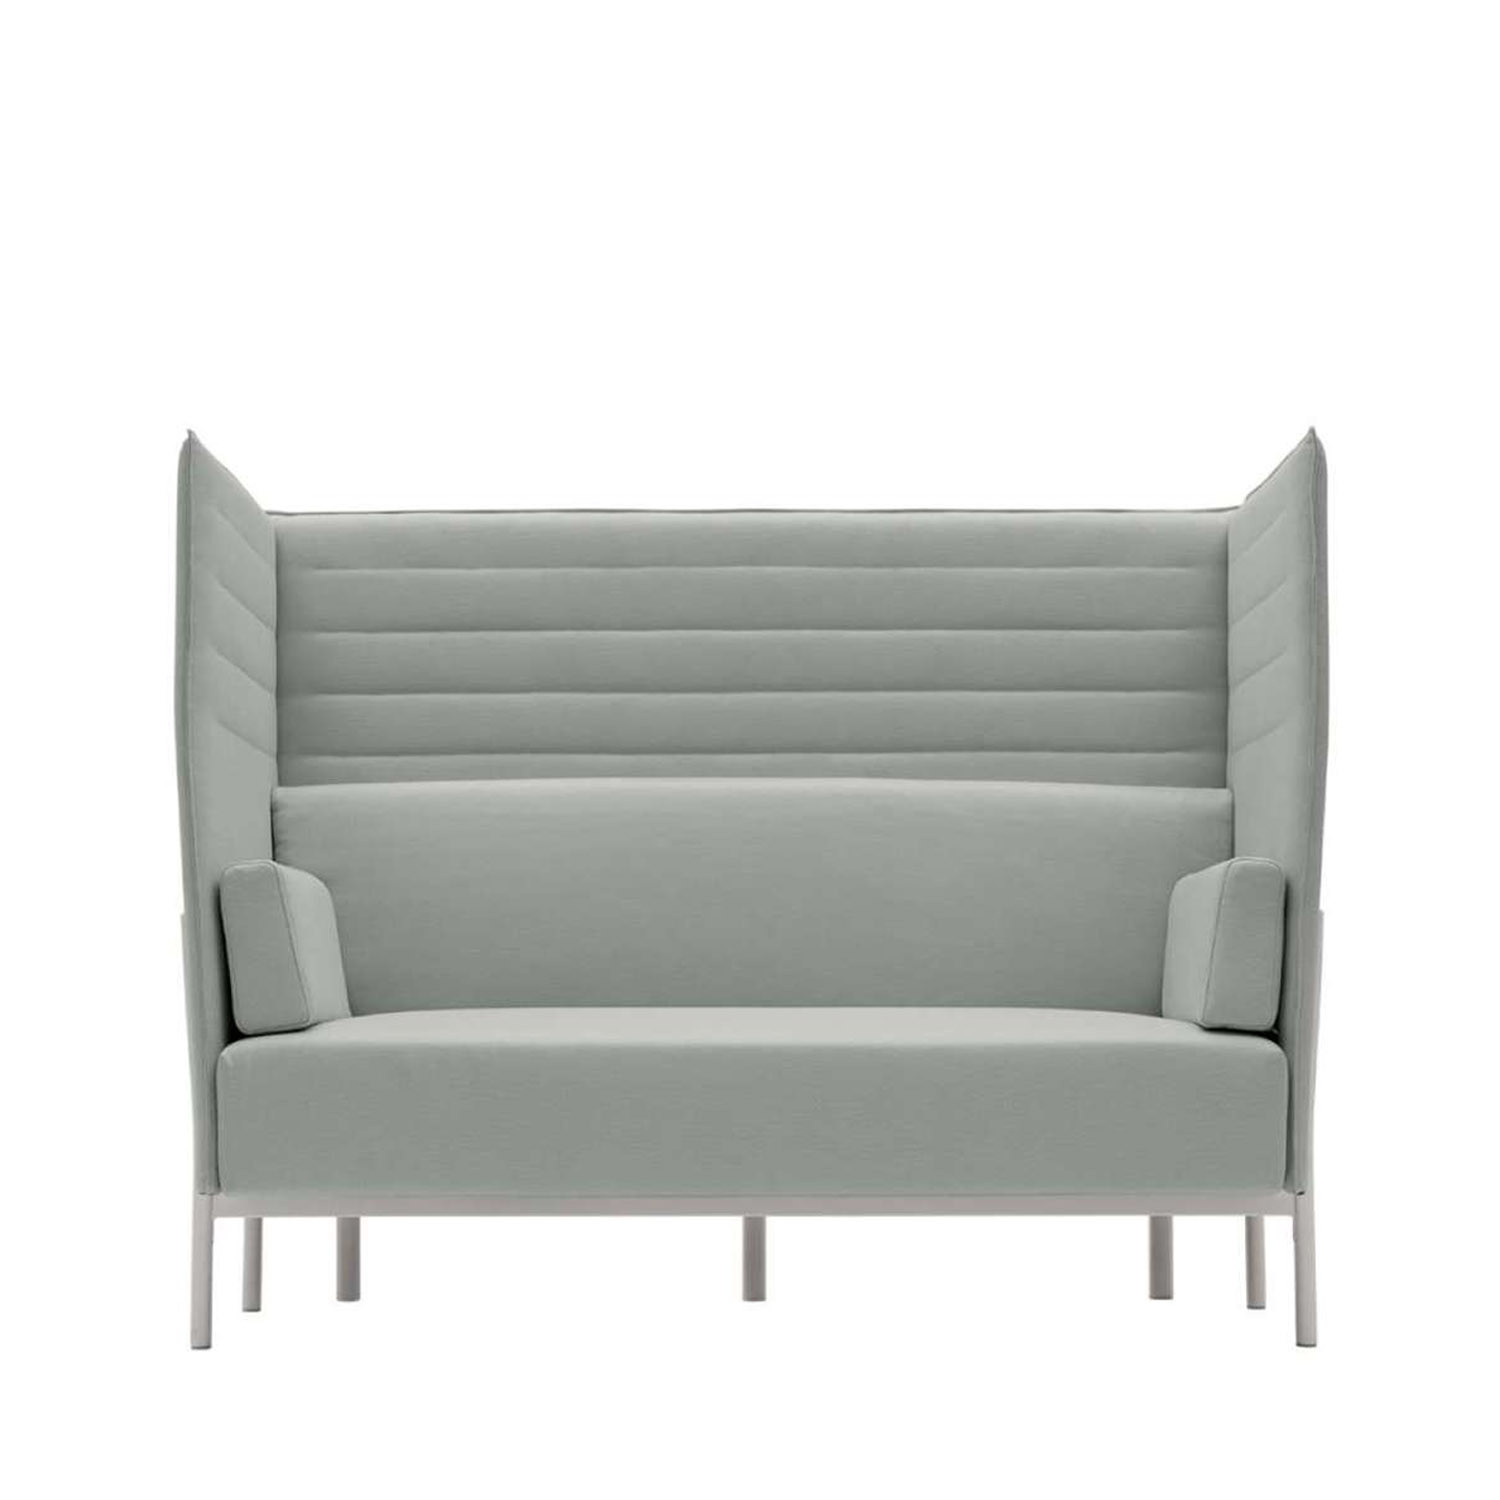 Eleven High Back Sofas from PearsonLloyd